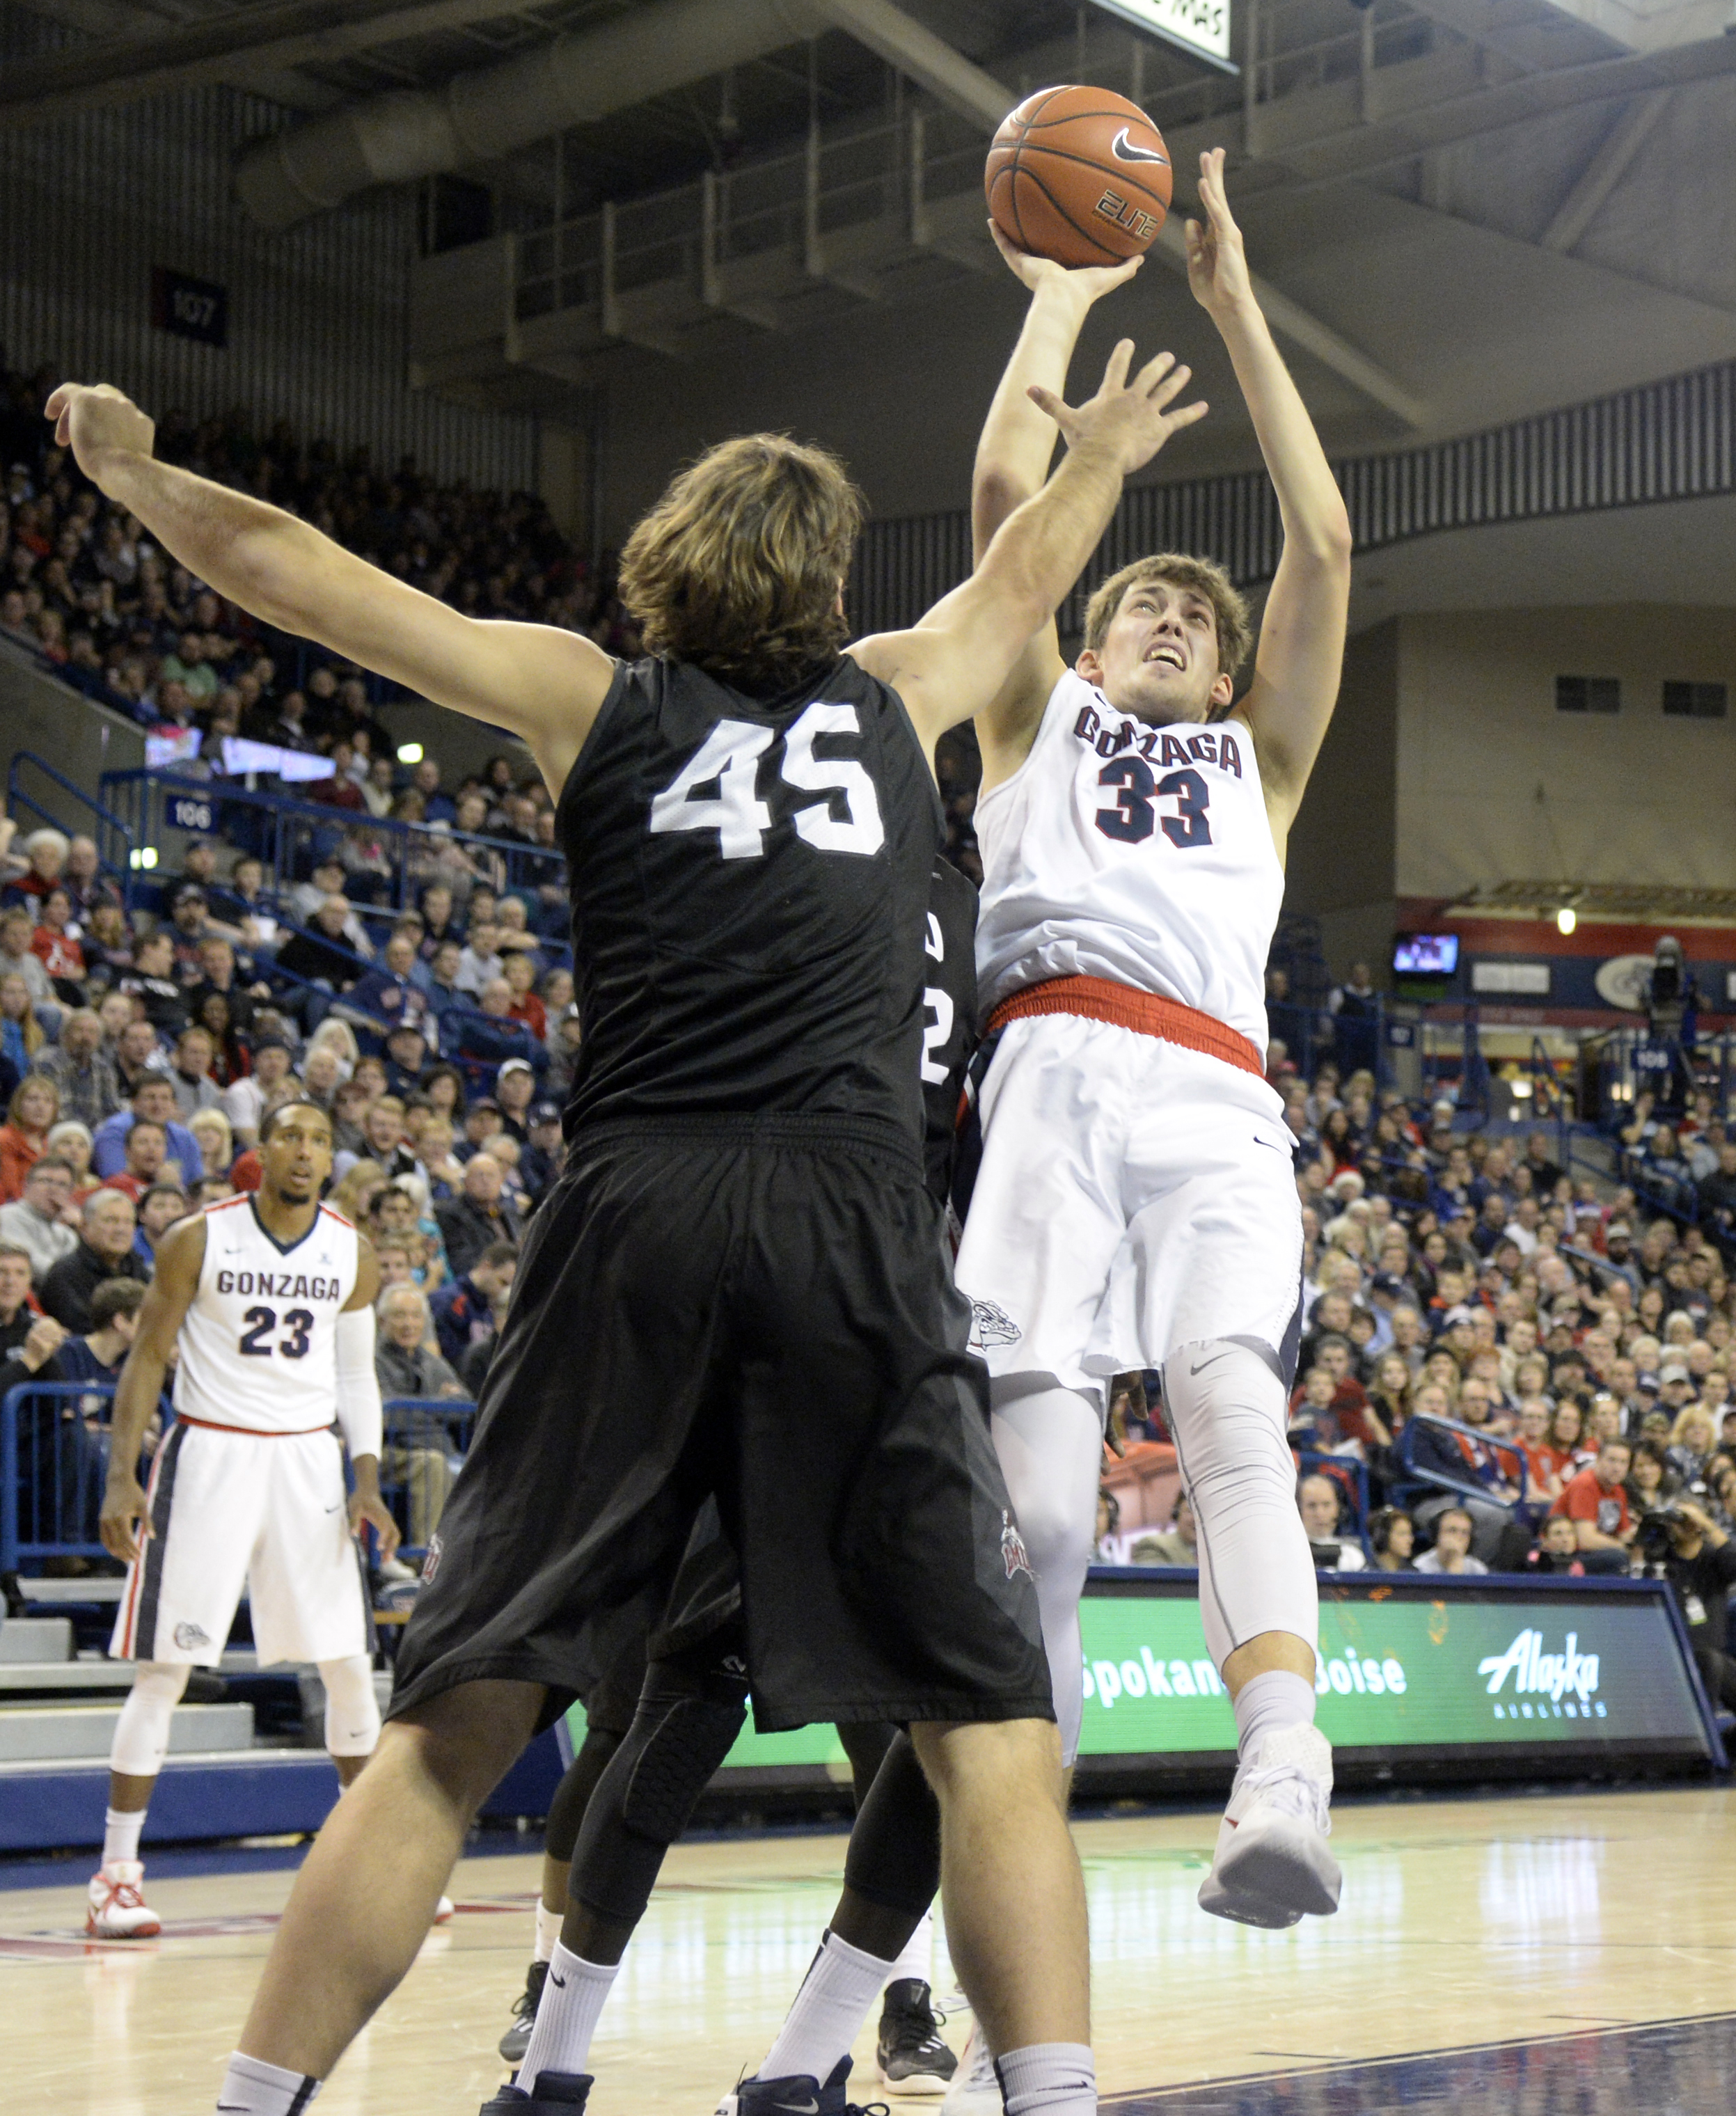 Gonzaga's Kyle Wiltjer tries a catch-and-shoot in the paint but is knocked off-balance by Loyola Marymount's David Humphries (45), drawing a foul, during the first half of an NCAA college basketball game Wednesday, Dec. 23, 2015, in Spokane, Wash. (Jesse